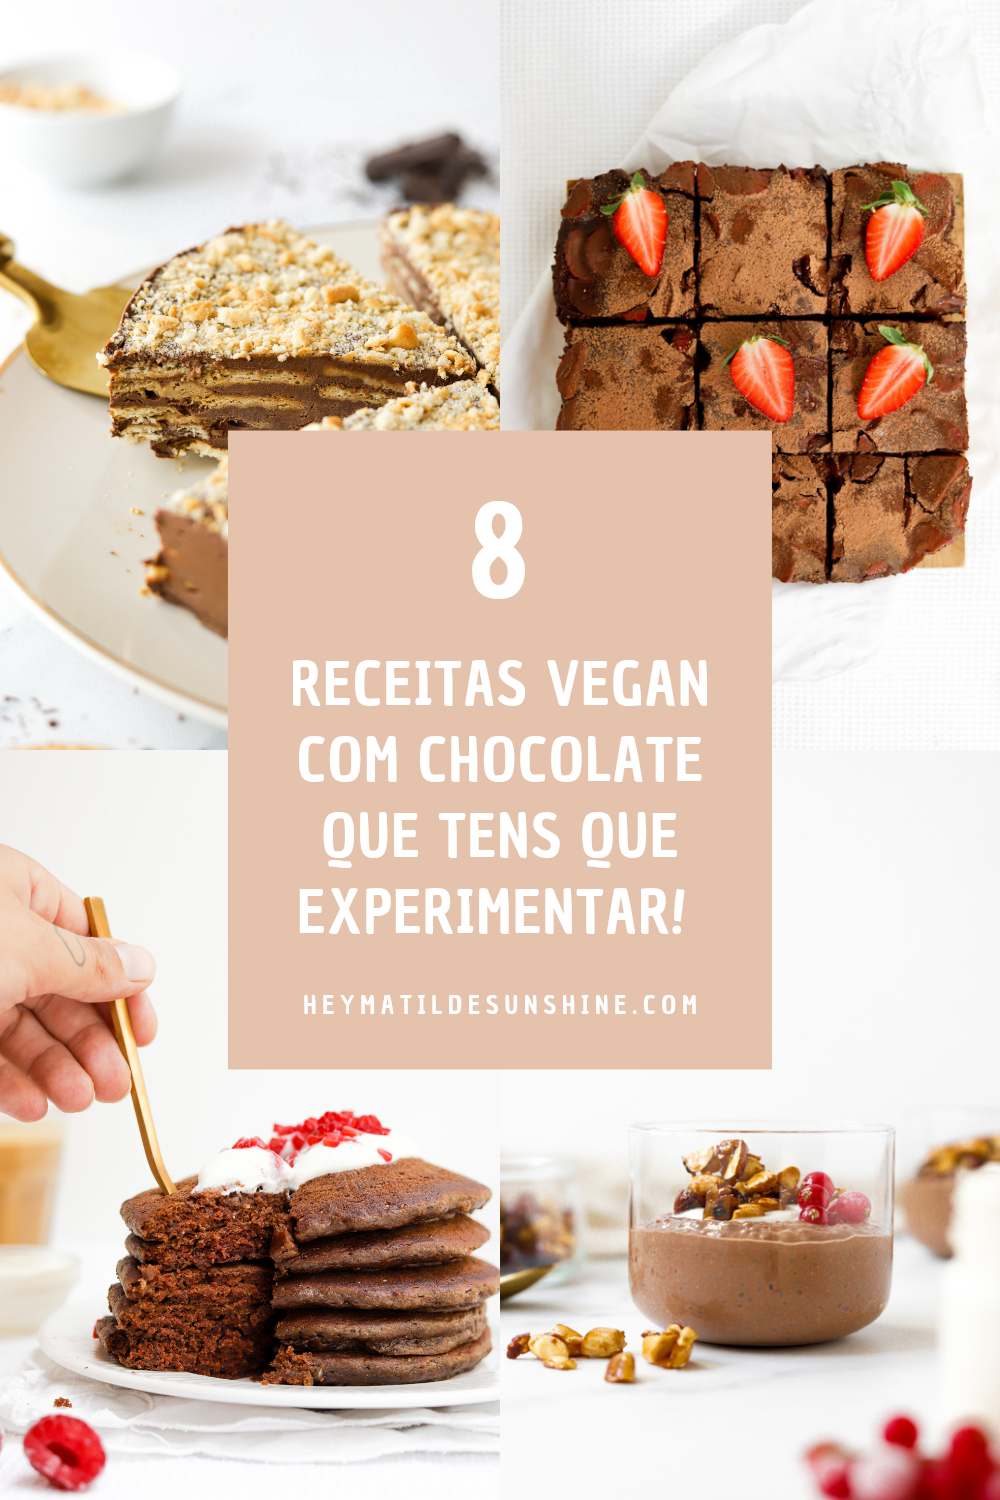 8 Receitas Vegan com Chocolate